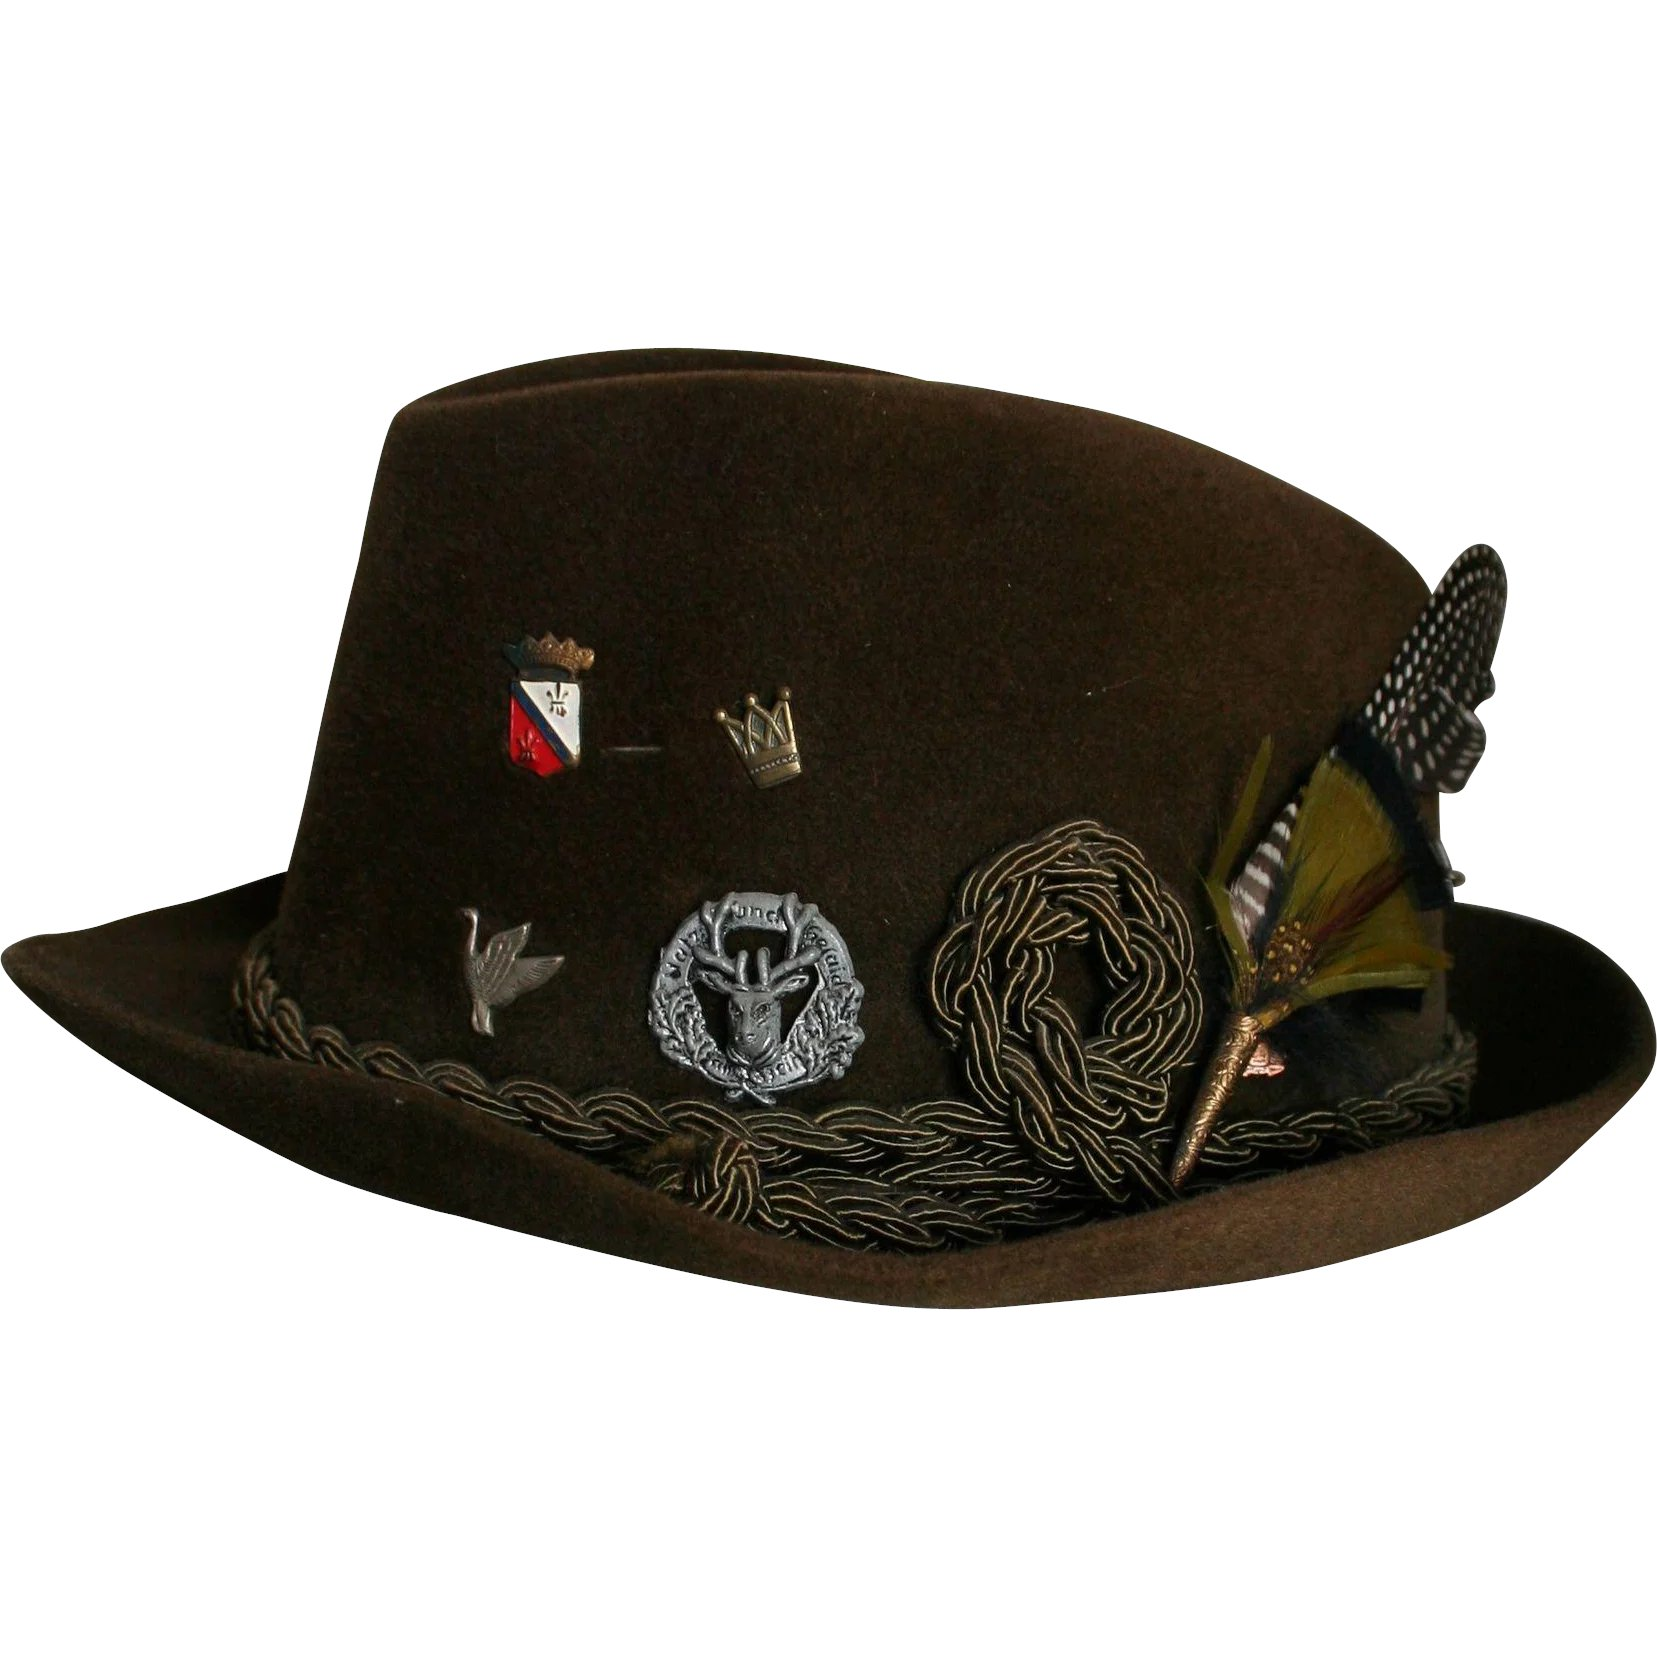 4a467093deb Reserved for L ** Mens Vintage New Dobbs NY Fedora Sz 7 Feather & : Greta's  Gallery   Ruby Lane